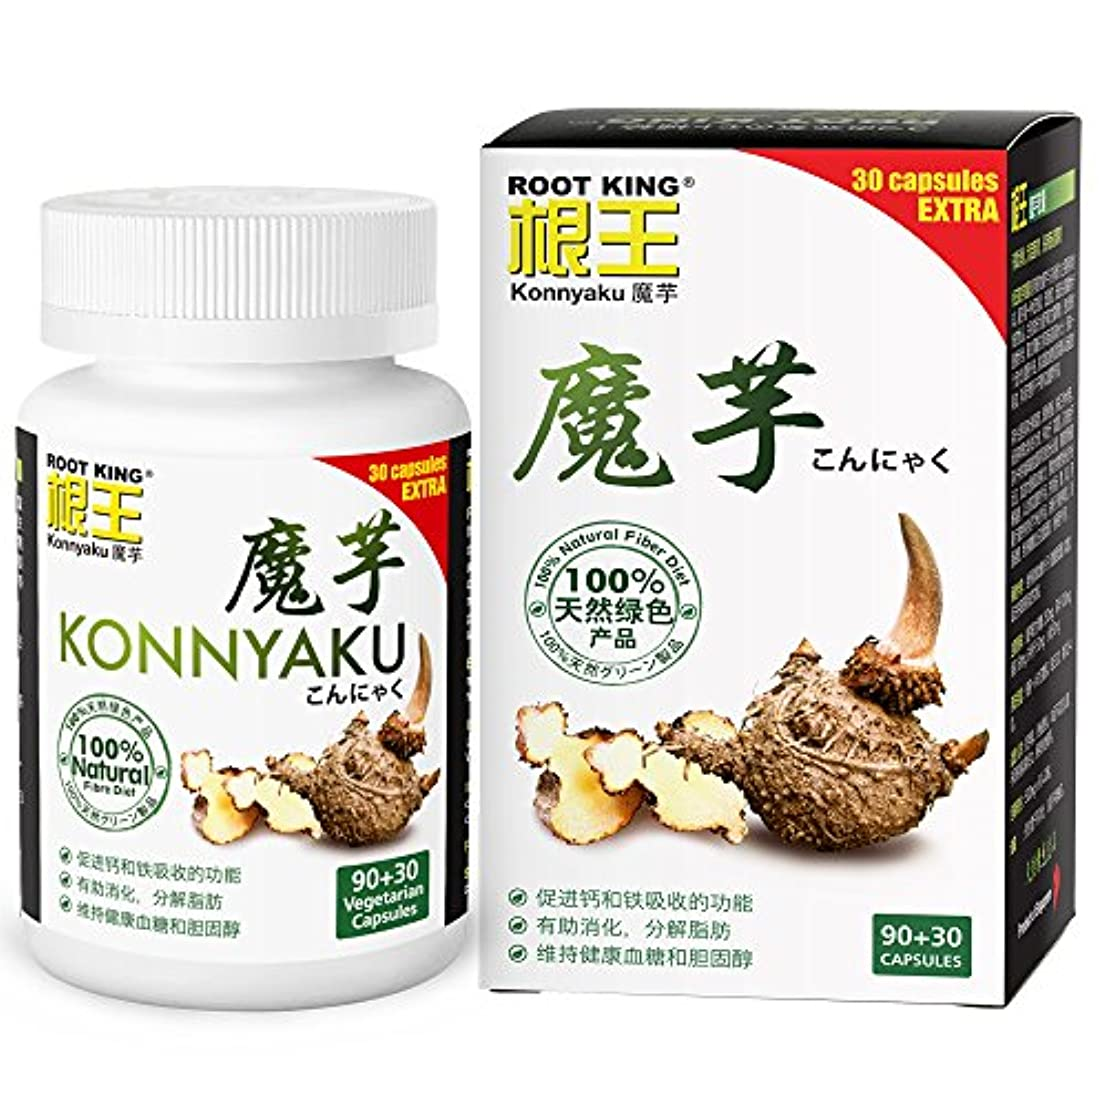 脳狼必須ROOT KING Konnyaku (120 Vegecaps) - control appetitide, feel fuller, contains Konjac glucomannan